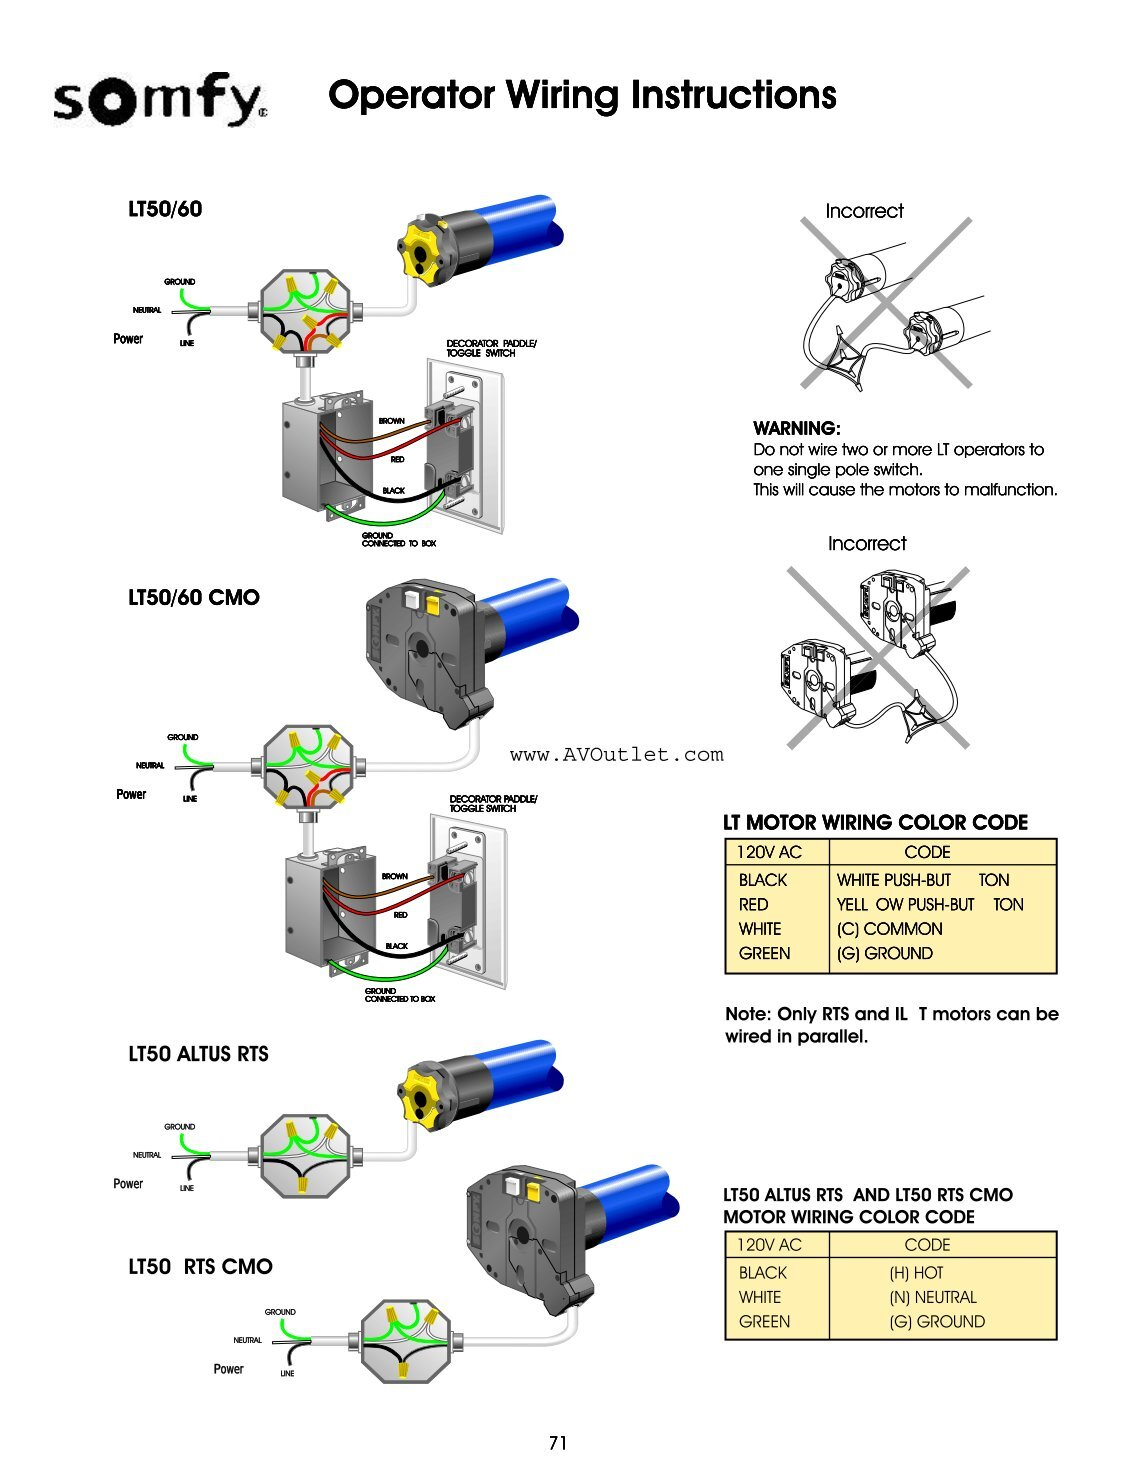 Rts Motor Wiring Diagram Electrical Schematics Single Phase Capacitor Start Induction 20 Free Magazines From Avoutlet Com Ac